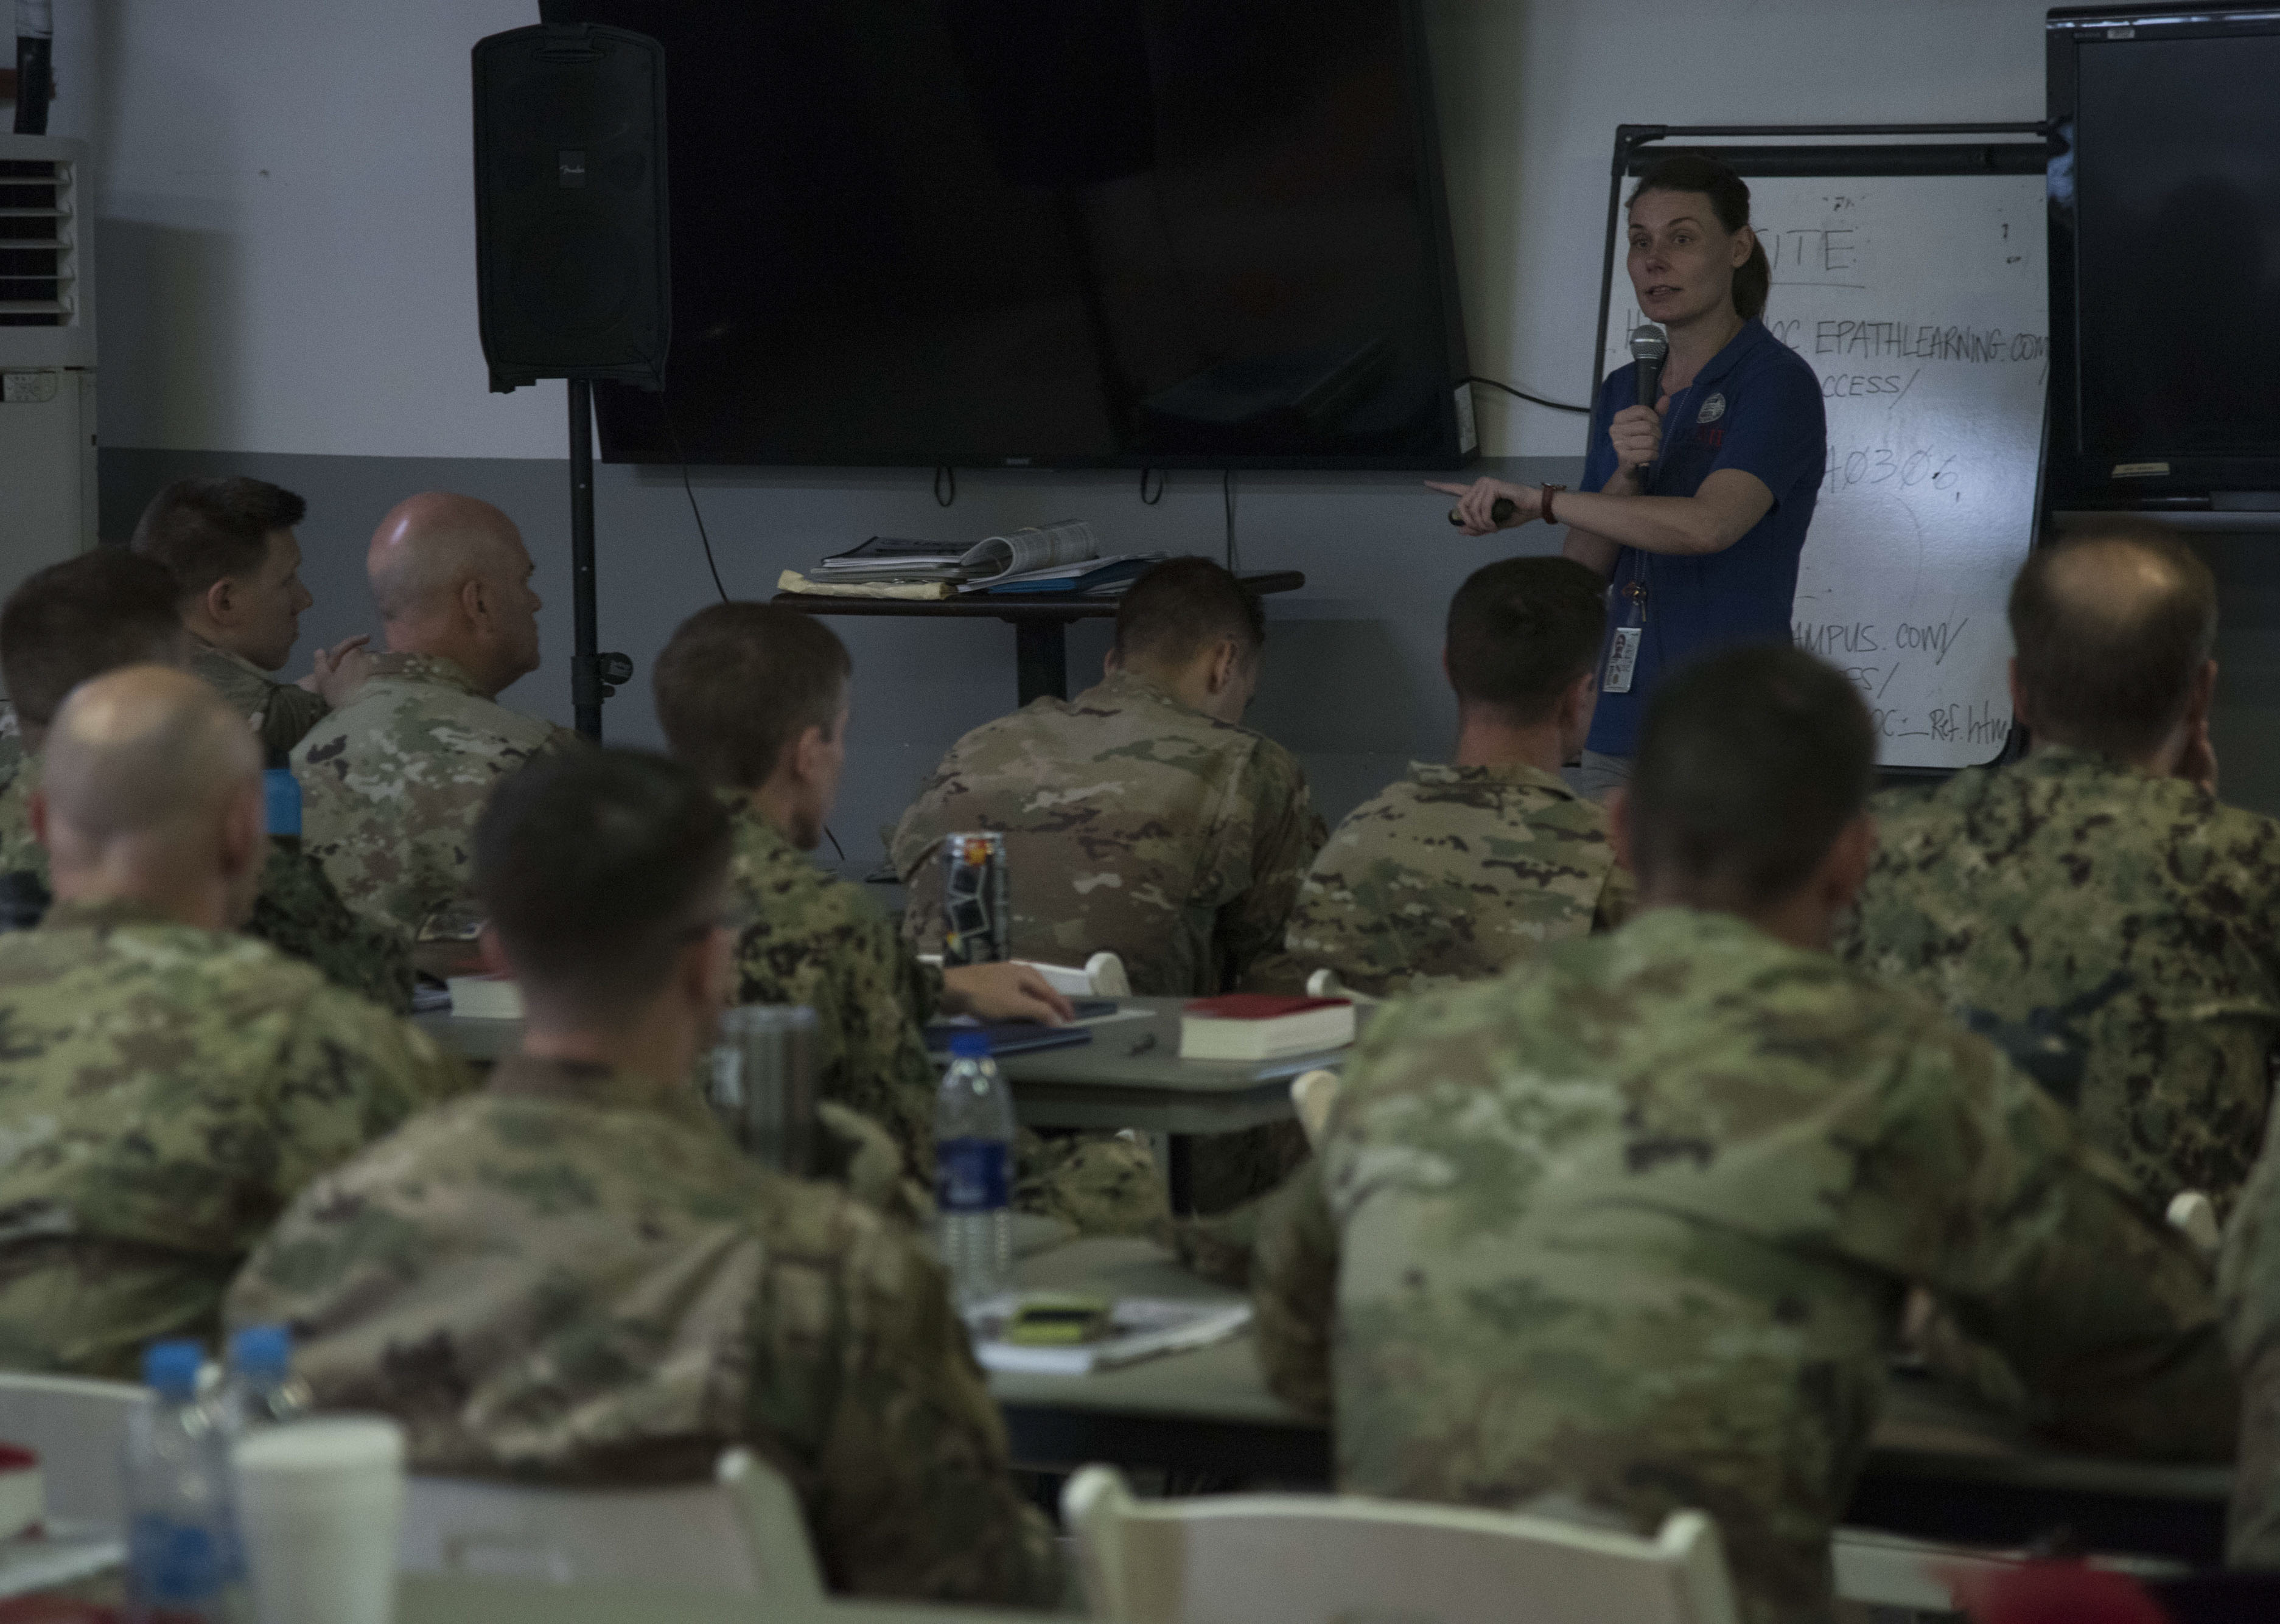 Leigh Caraher, an instructor from the U.S. Agency for International Development's Office of Foreign Disaster Assistance, teaches a Joint Humanitarian Operations Course to service members deployed to Camp Lemonnier, Djibouti, March 7, 2018. Members attended the two-day course, which highlighted international disaster response, best practices and the U.S. military's role when supporting foreign humanitarian assistance and disaster relief operations. (U.S. Air National Guard photo by Staff Sgt. Allyson L. Manners)